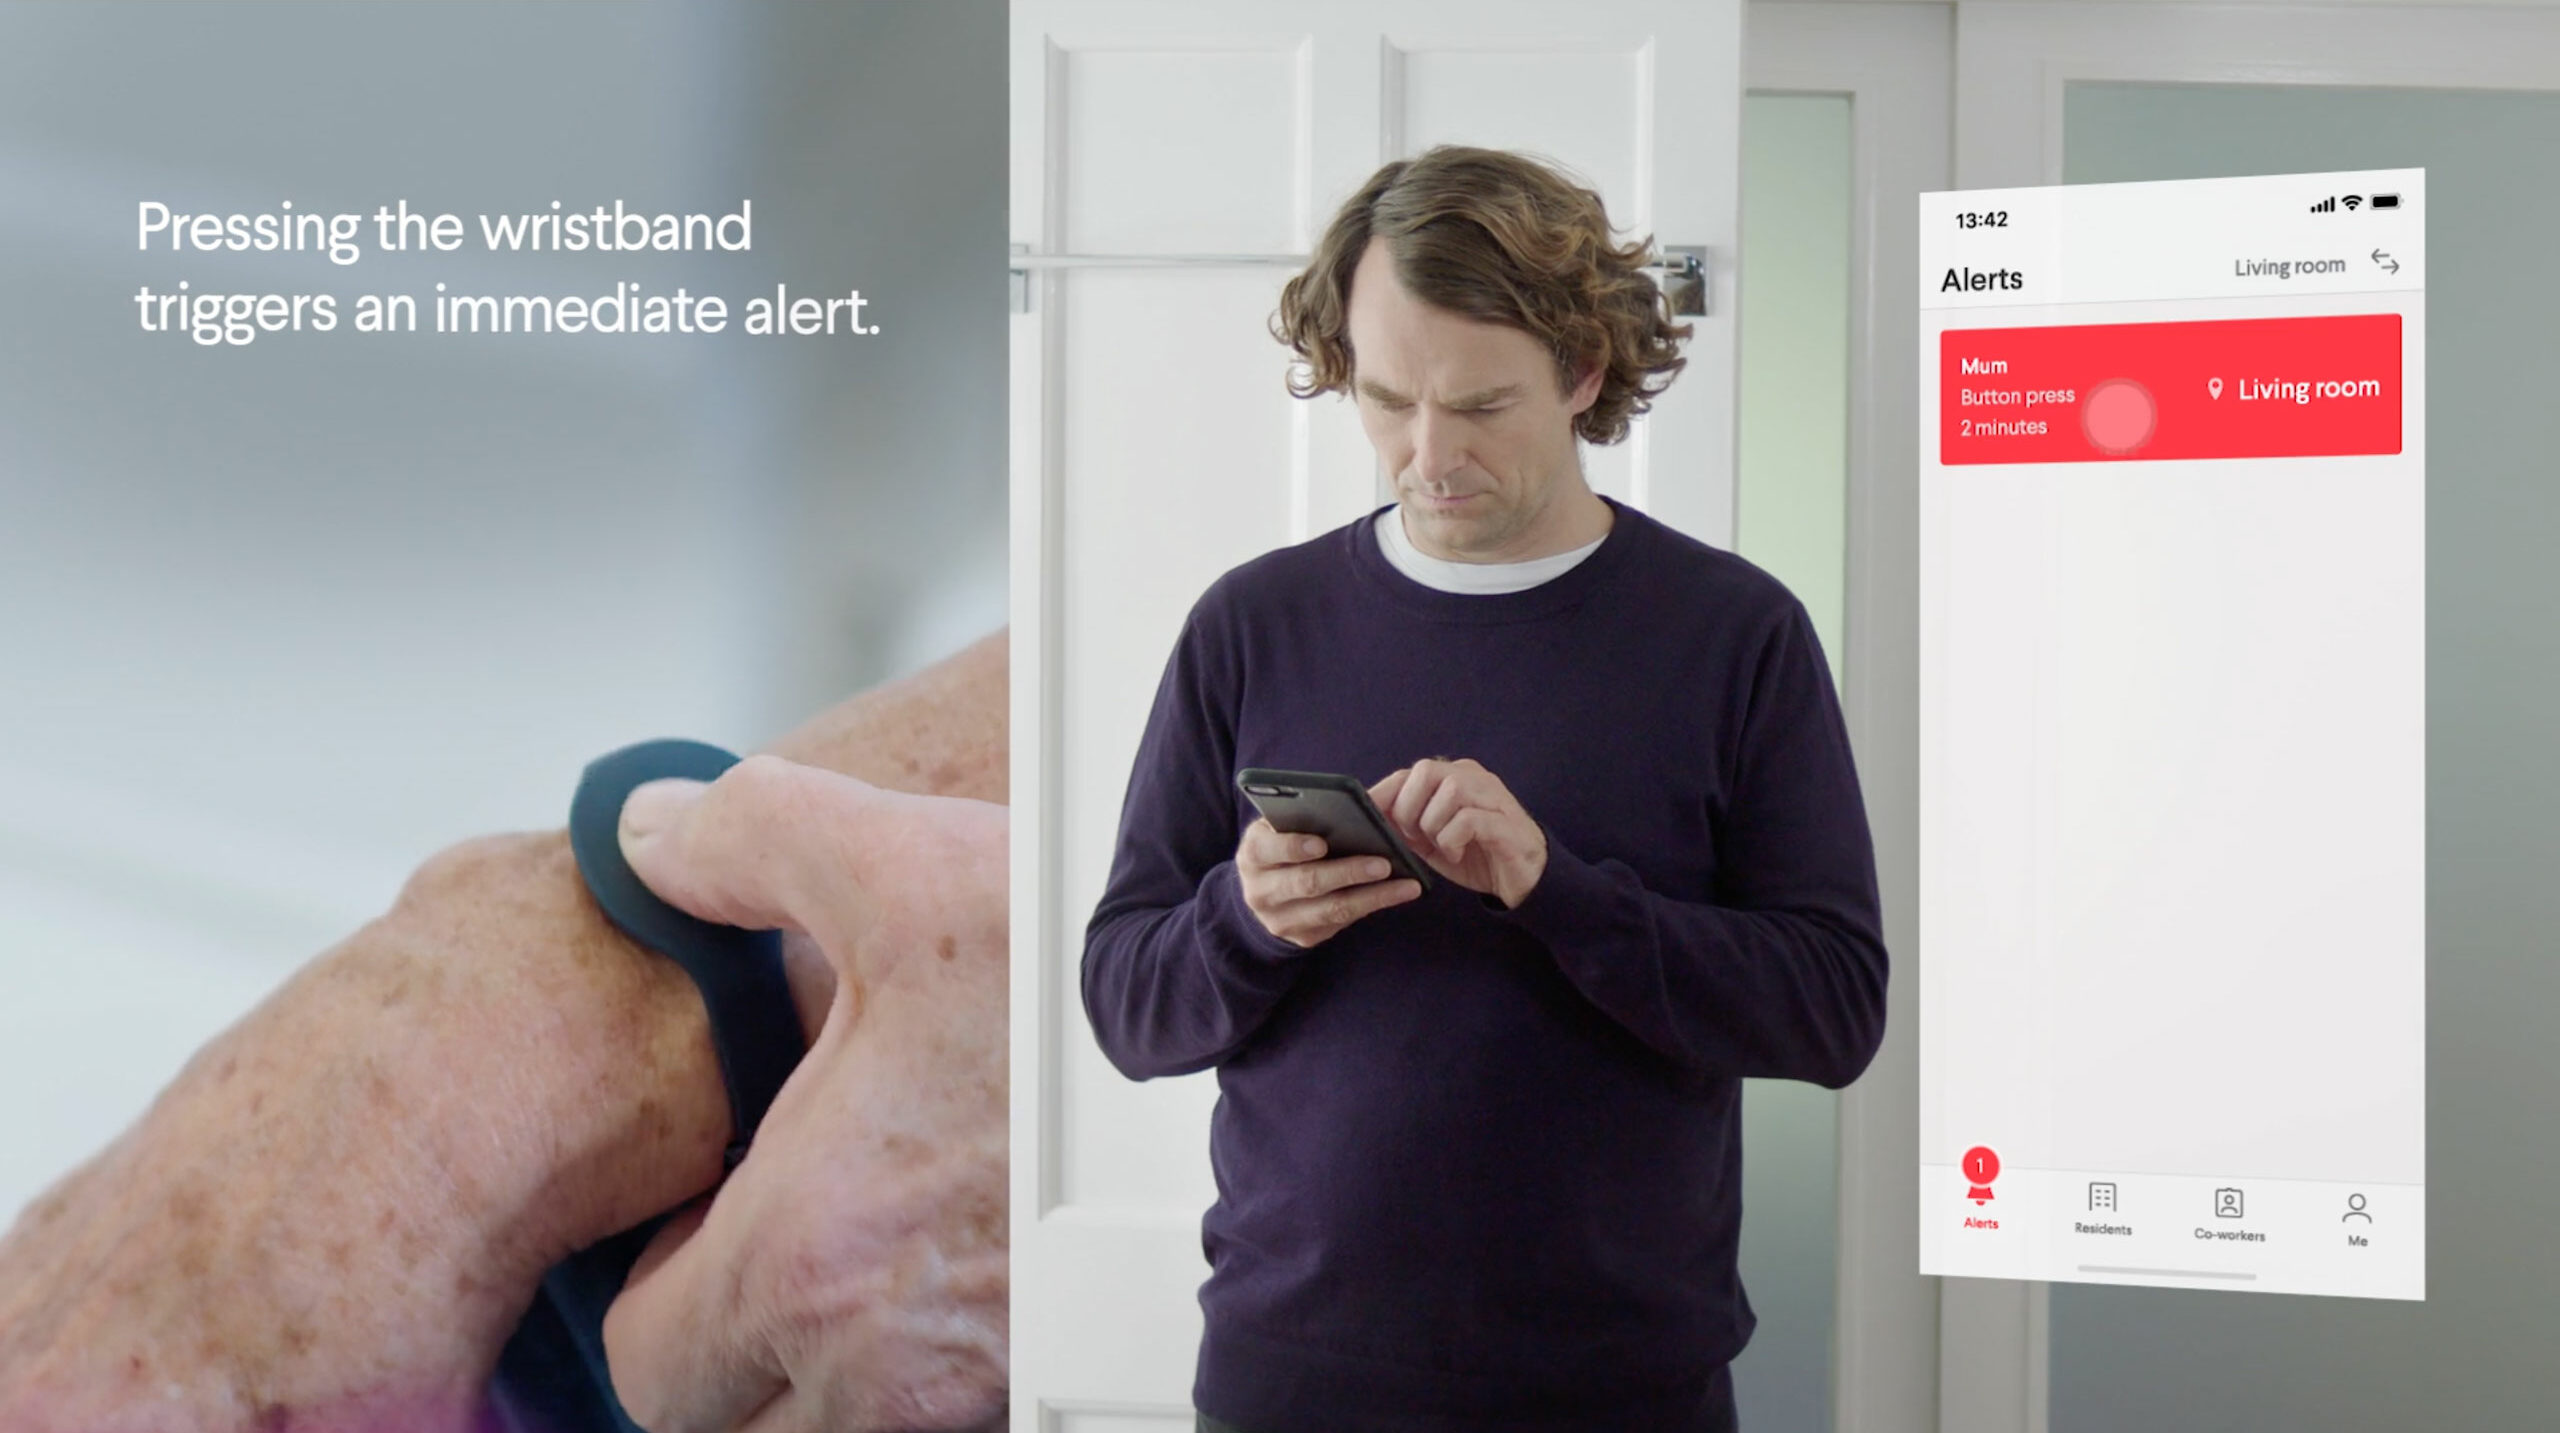 A man receiving a notification Button Pressed from his mum on his Nectarine Health mobile app